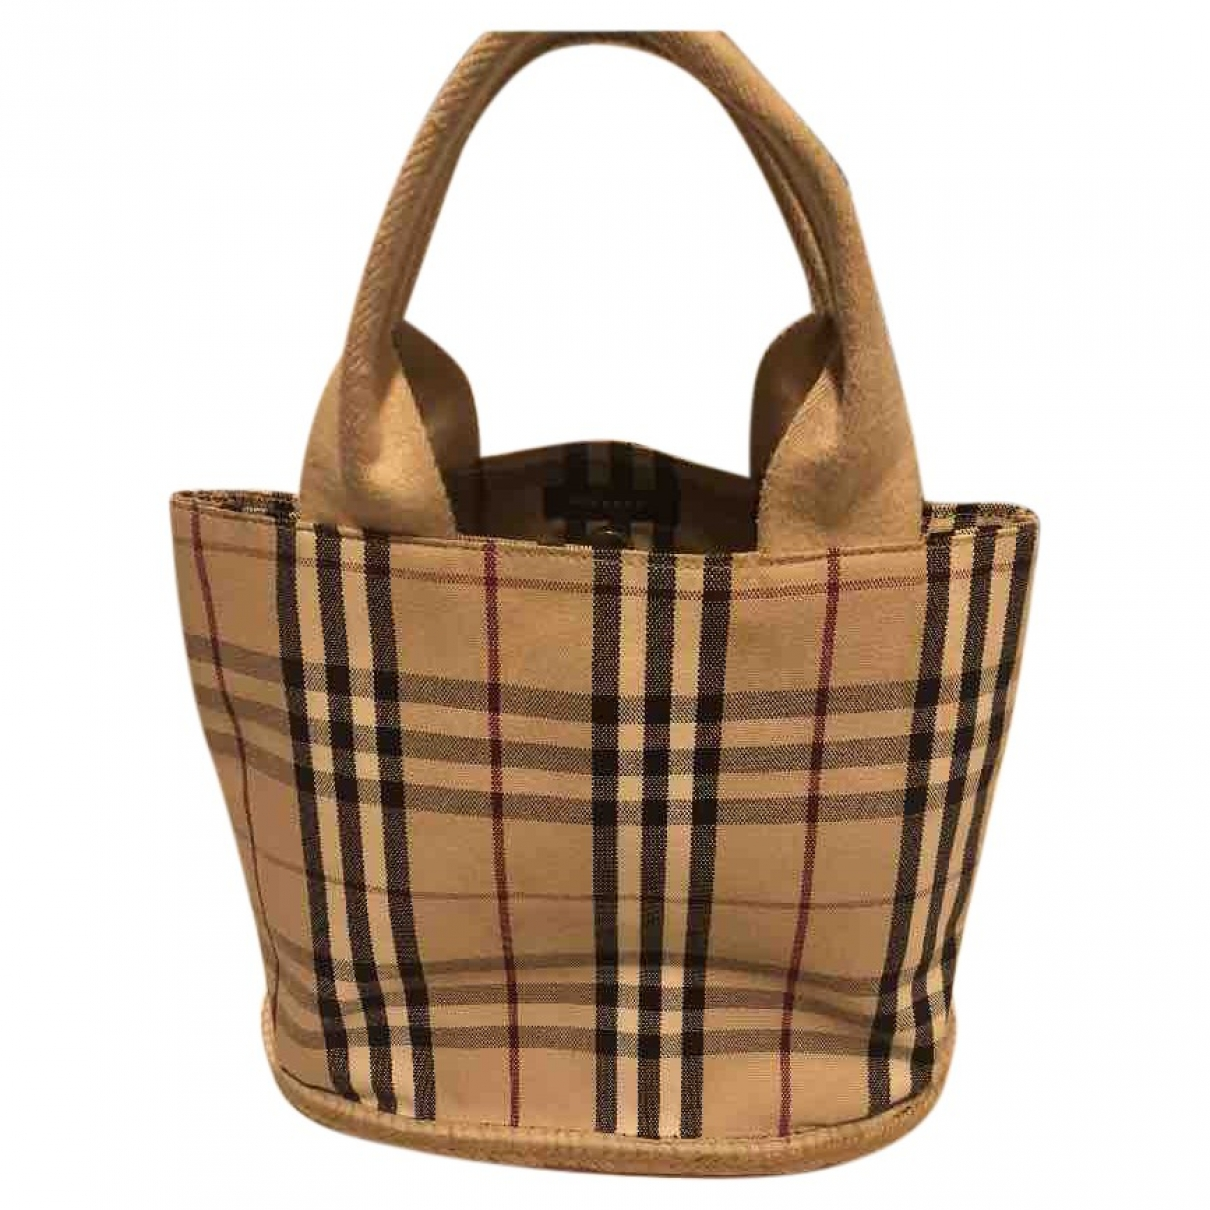 Burberry \N Cloth handbag for Women \N